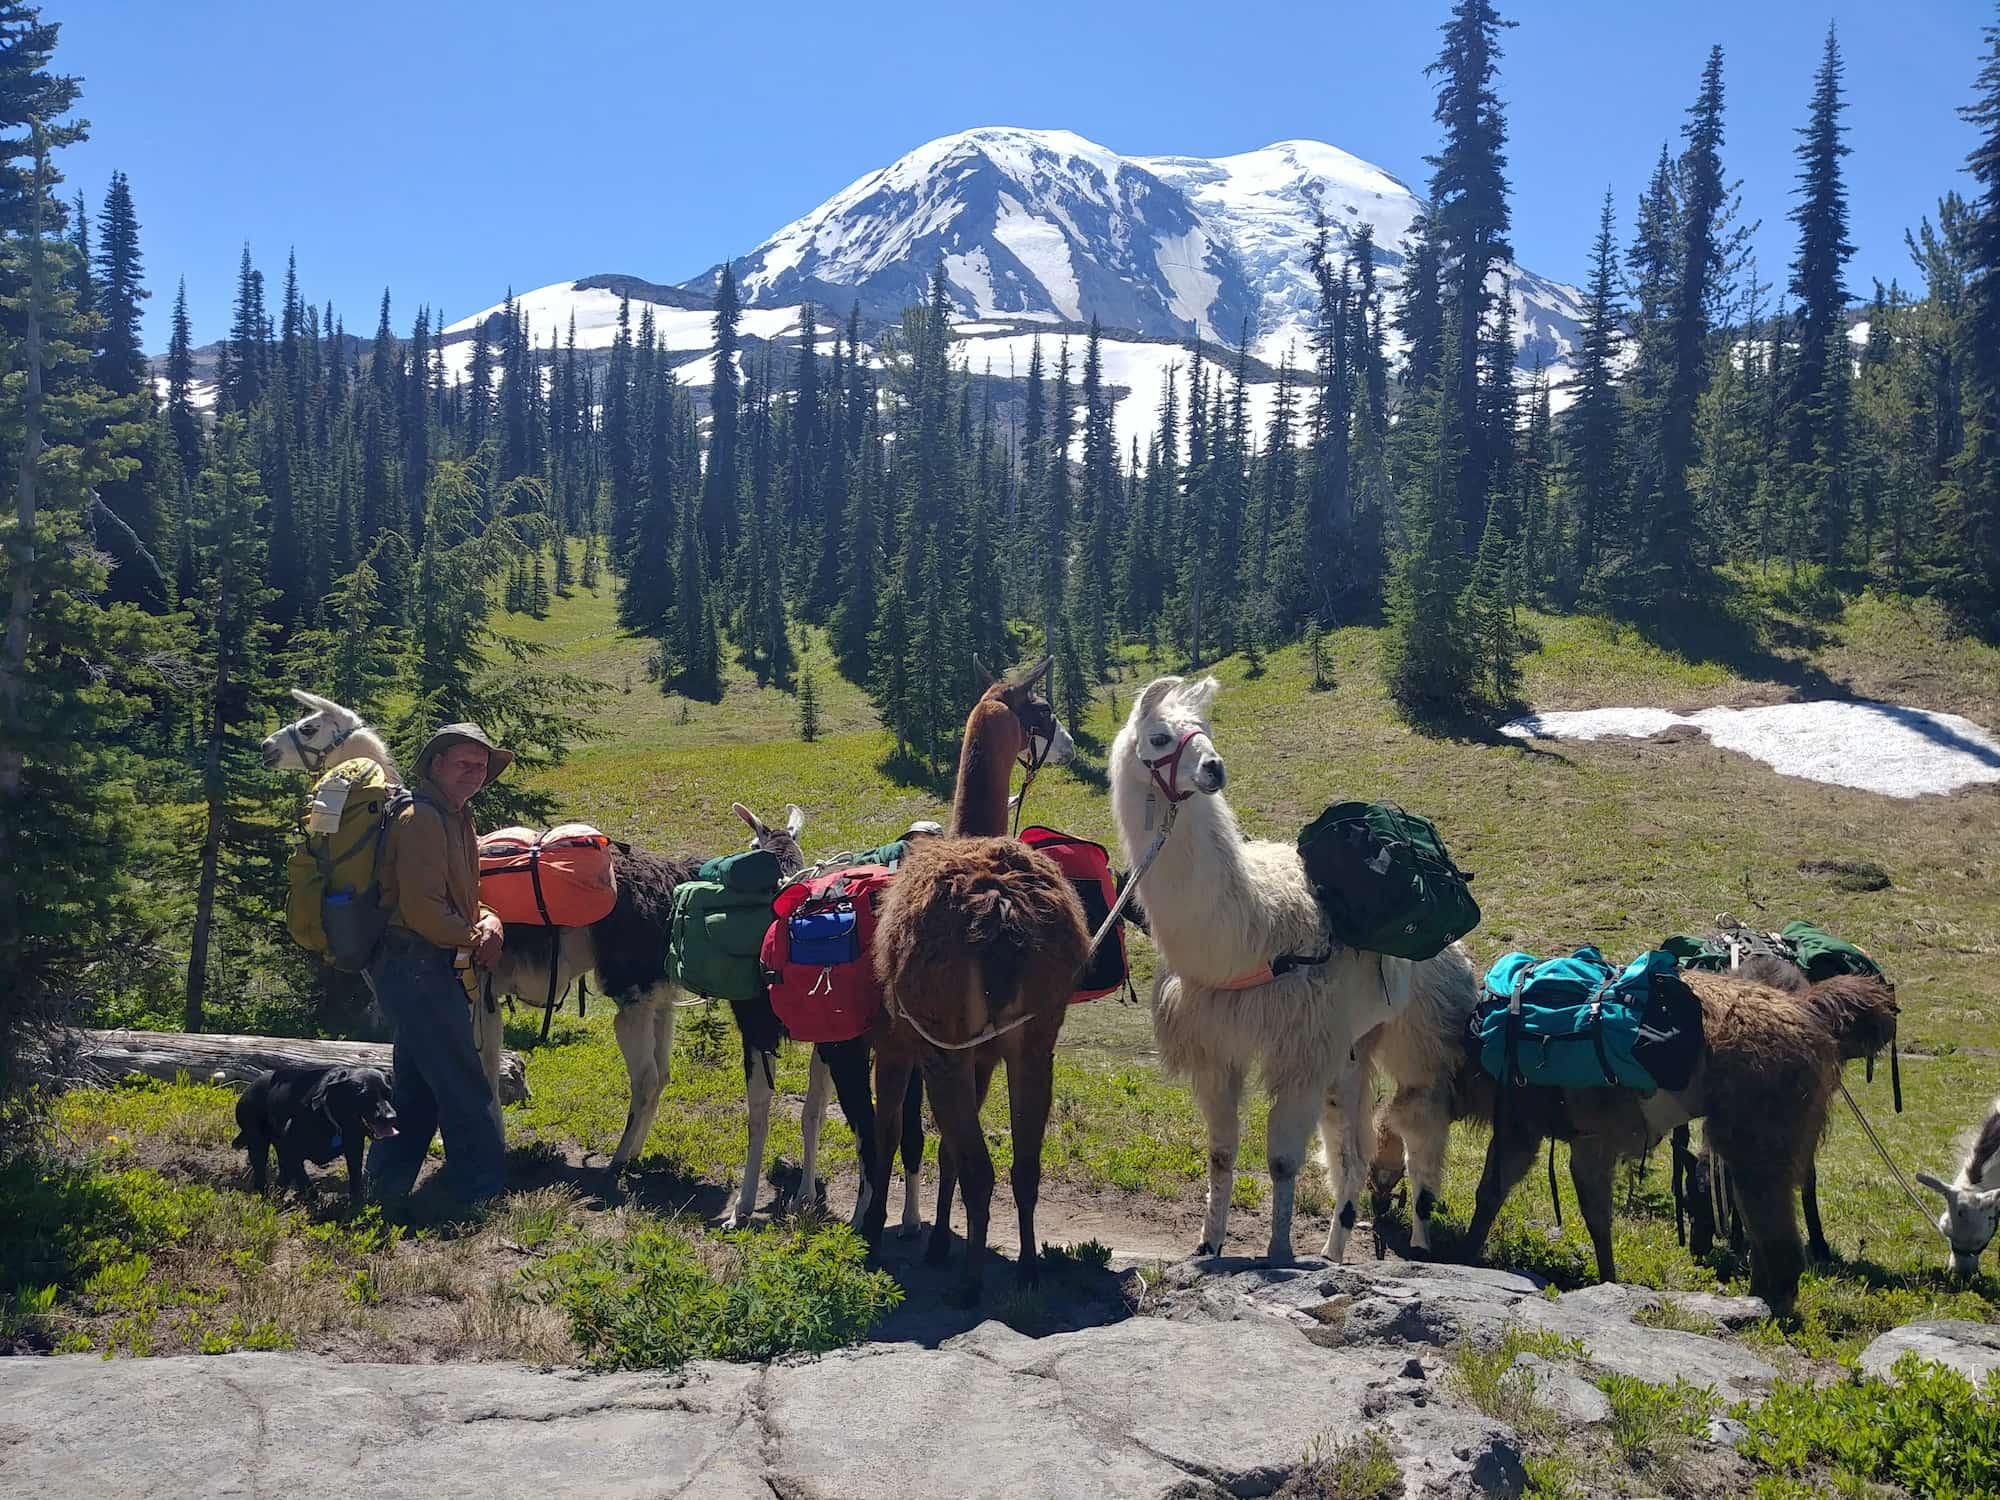 A group of pack llamas equipped with gear stand in a field below a snowcapped mountain.